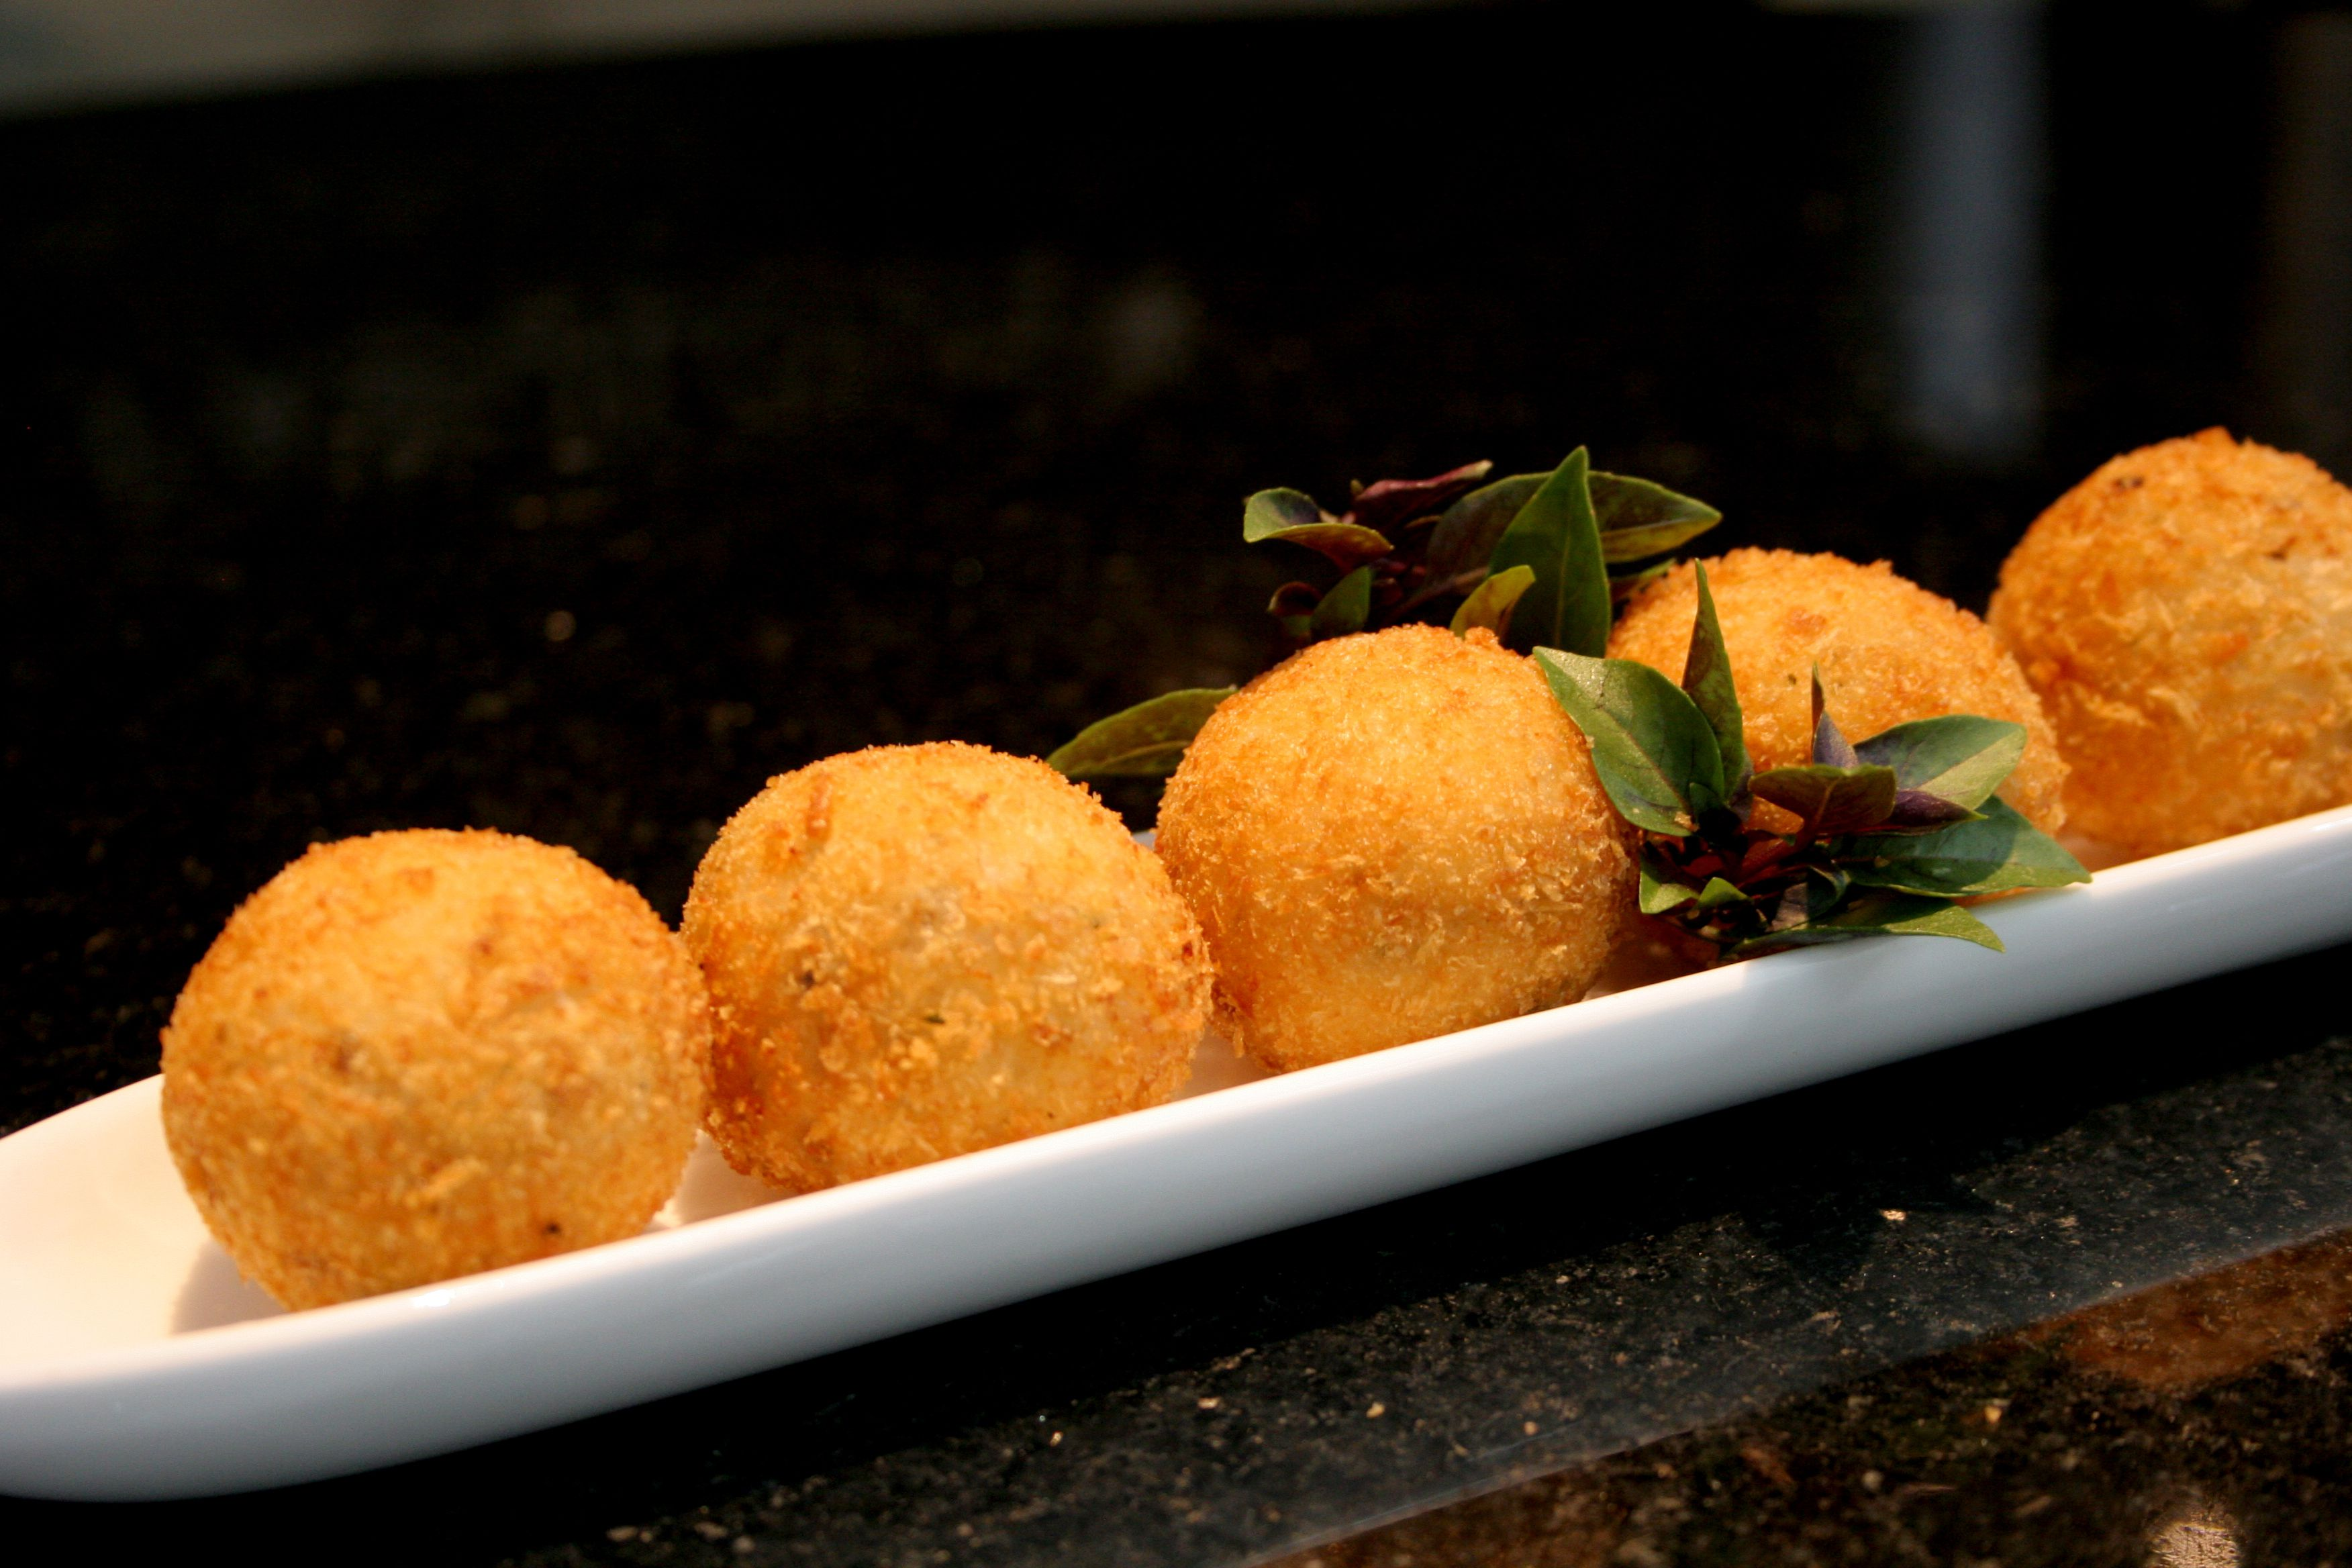 Baked Cheddar Cheese Balls With Olives Recipe